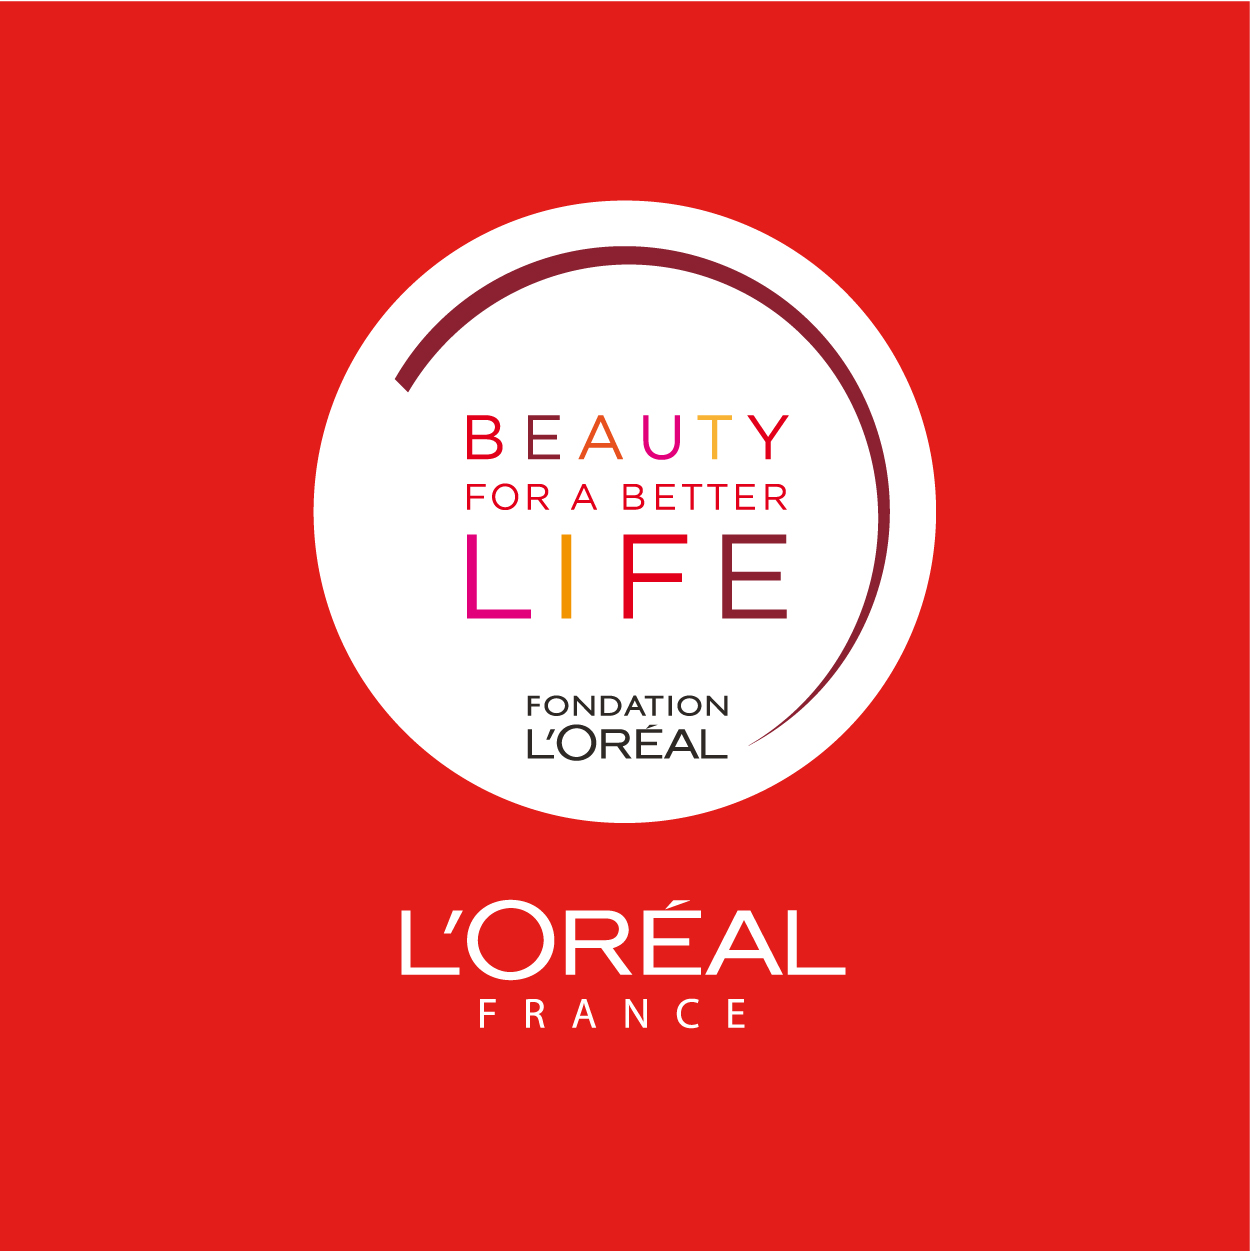 FONDATION-L'OREAL BFBL logo france -10